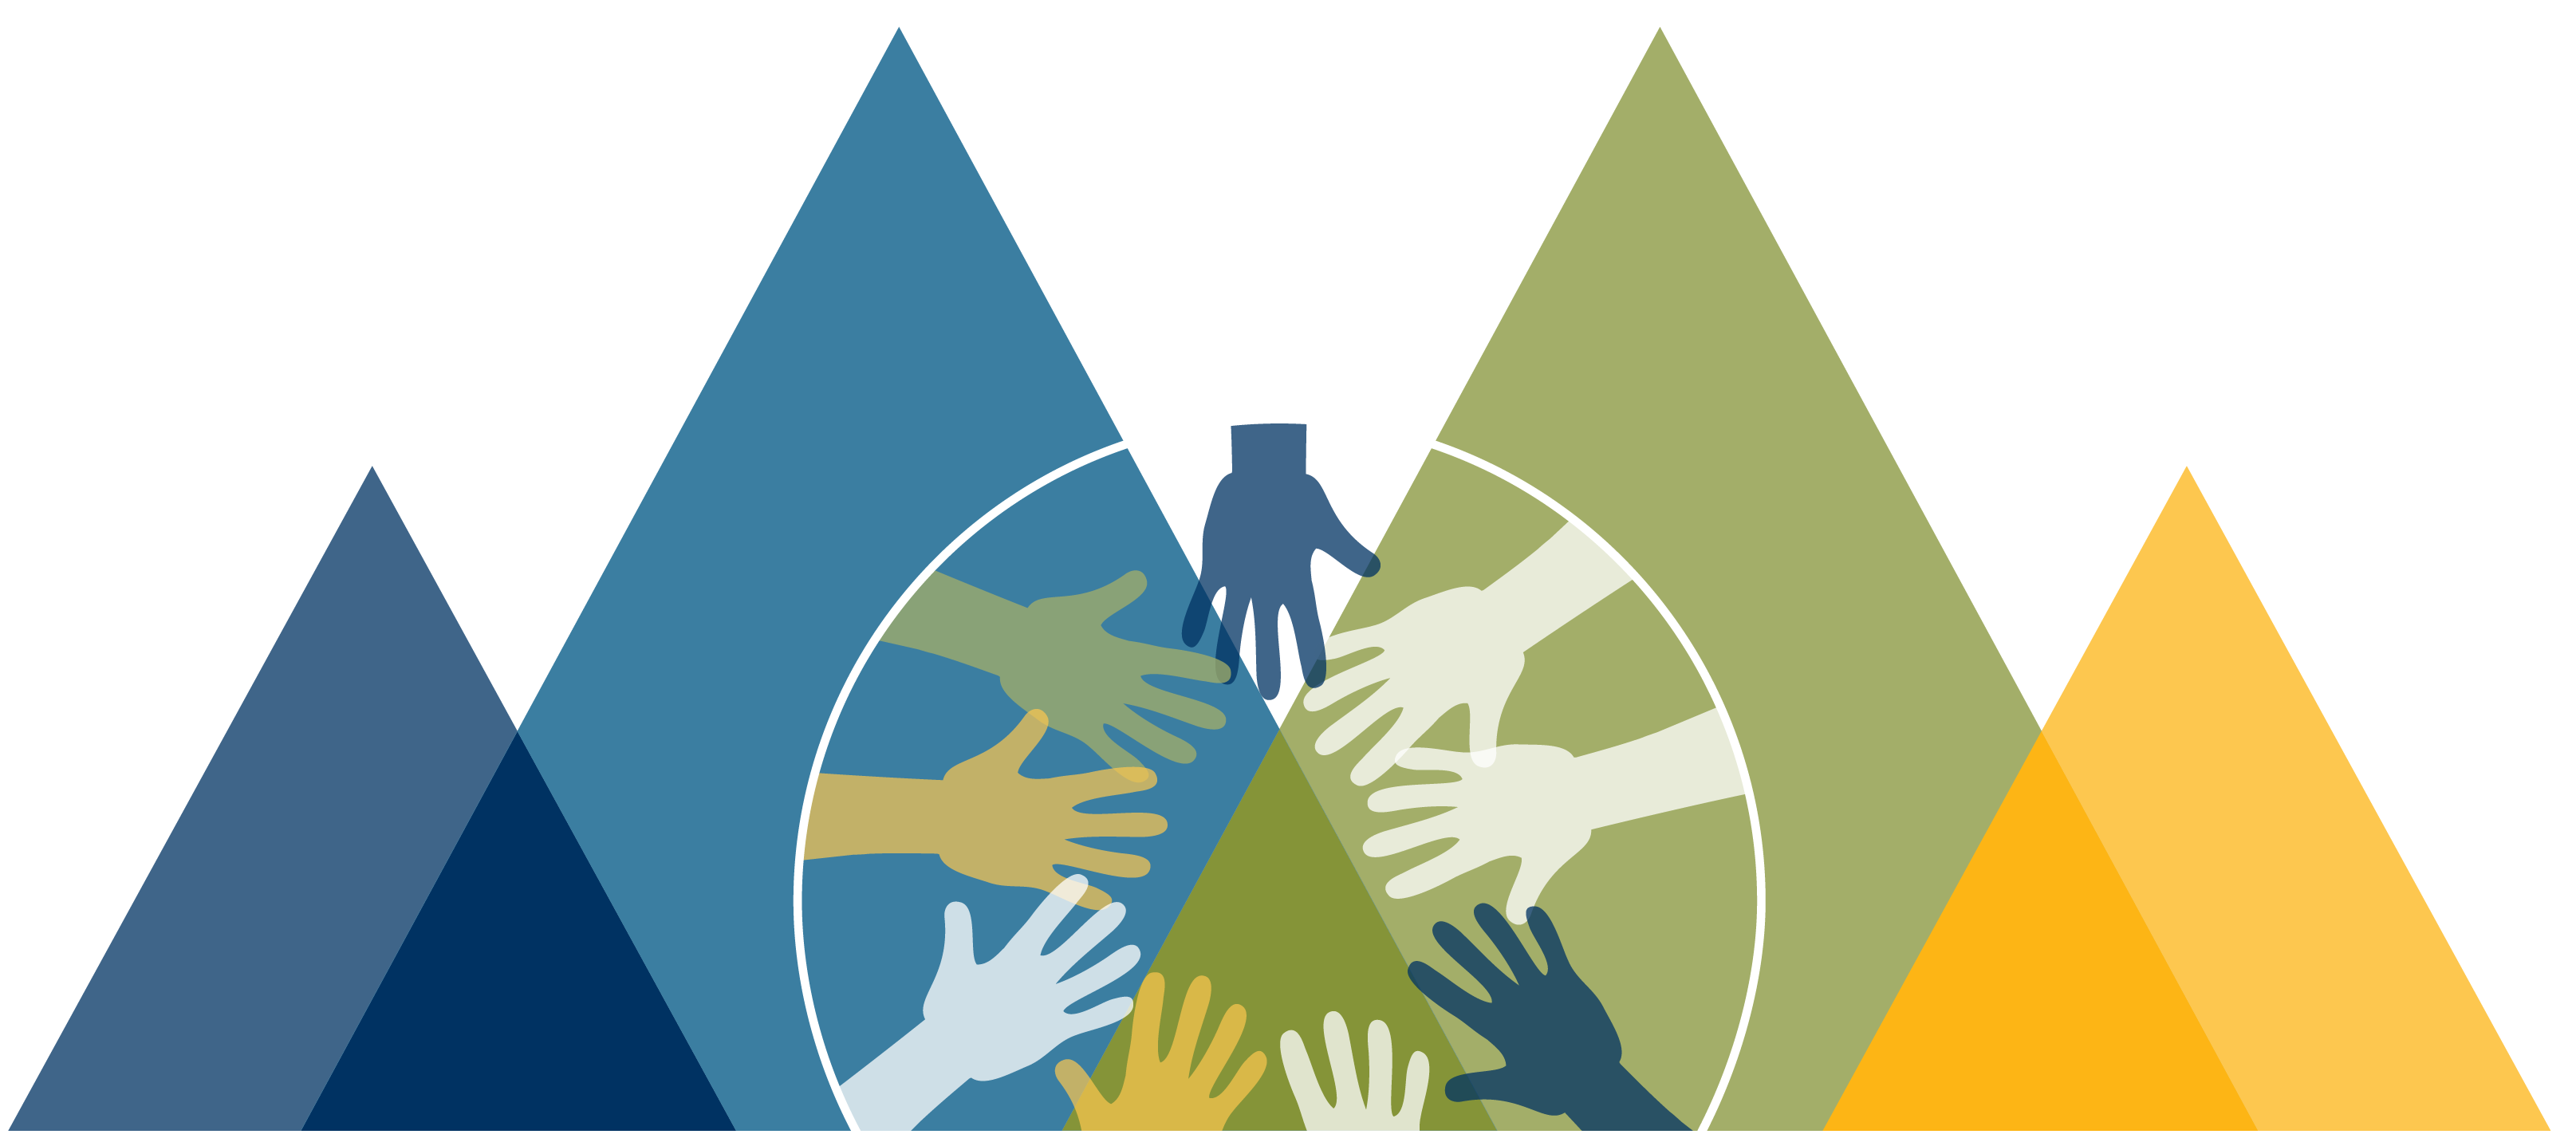 multi-colored mountains with a circle overlaid of all hands in